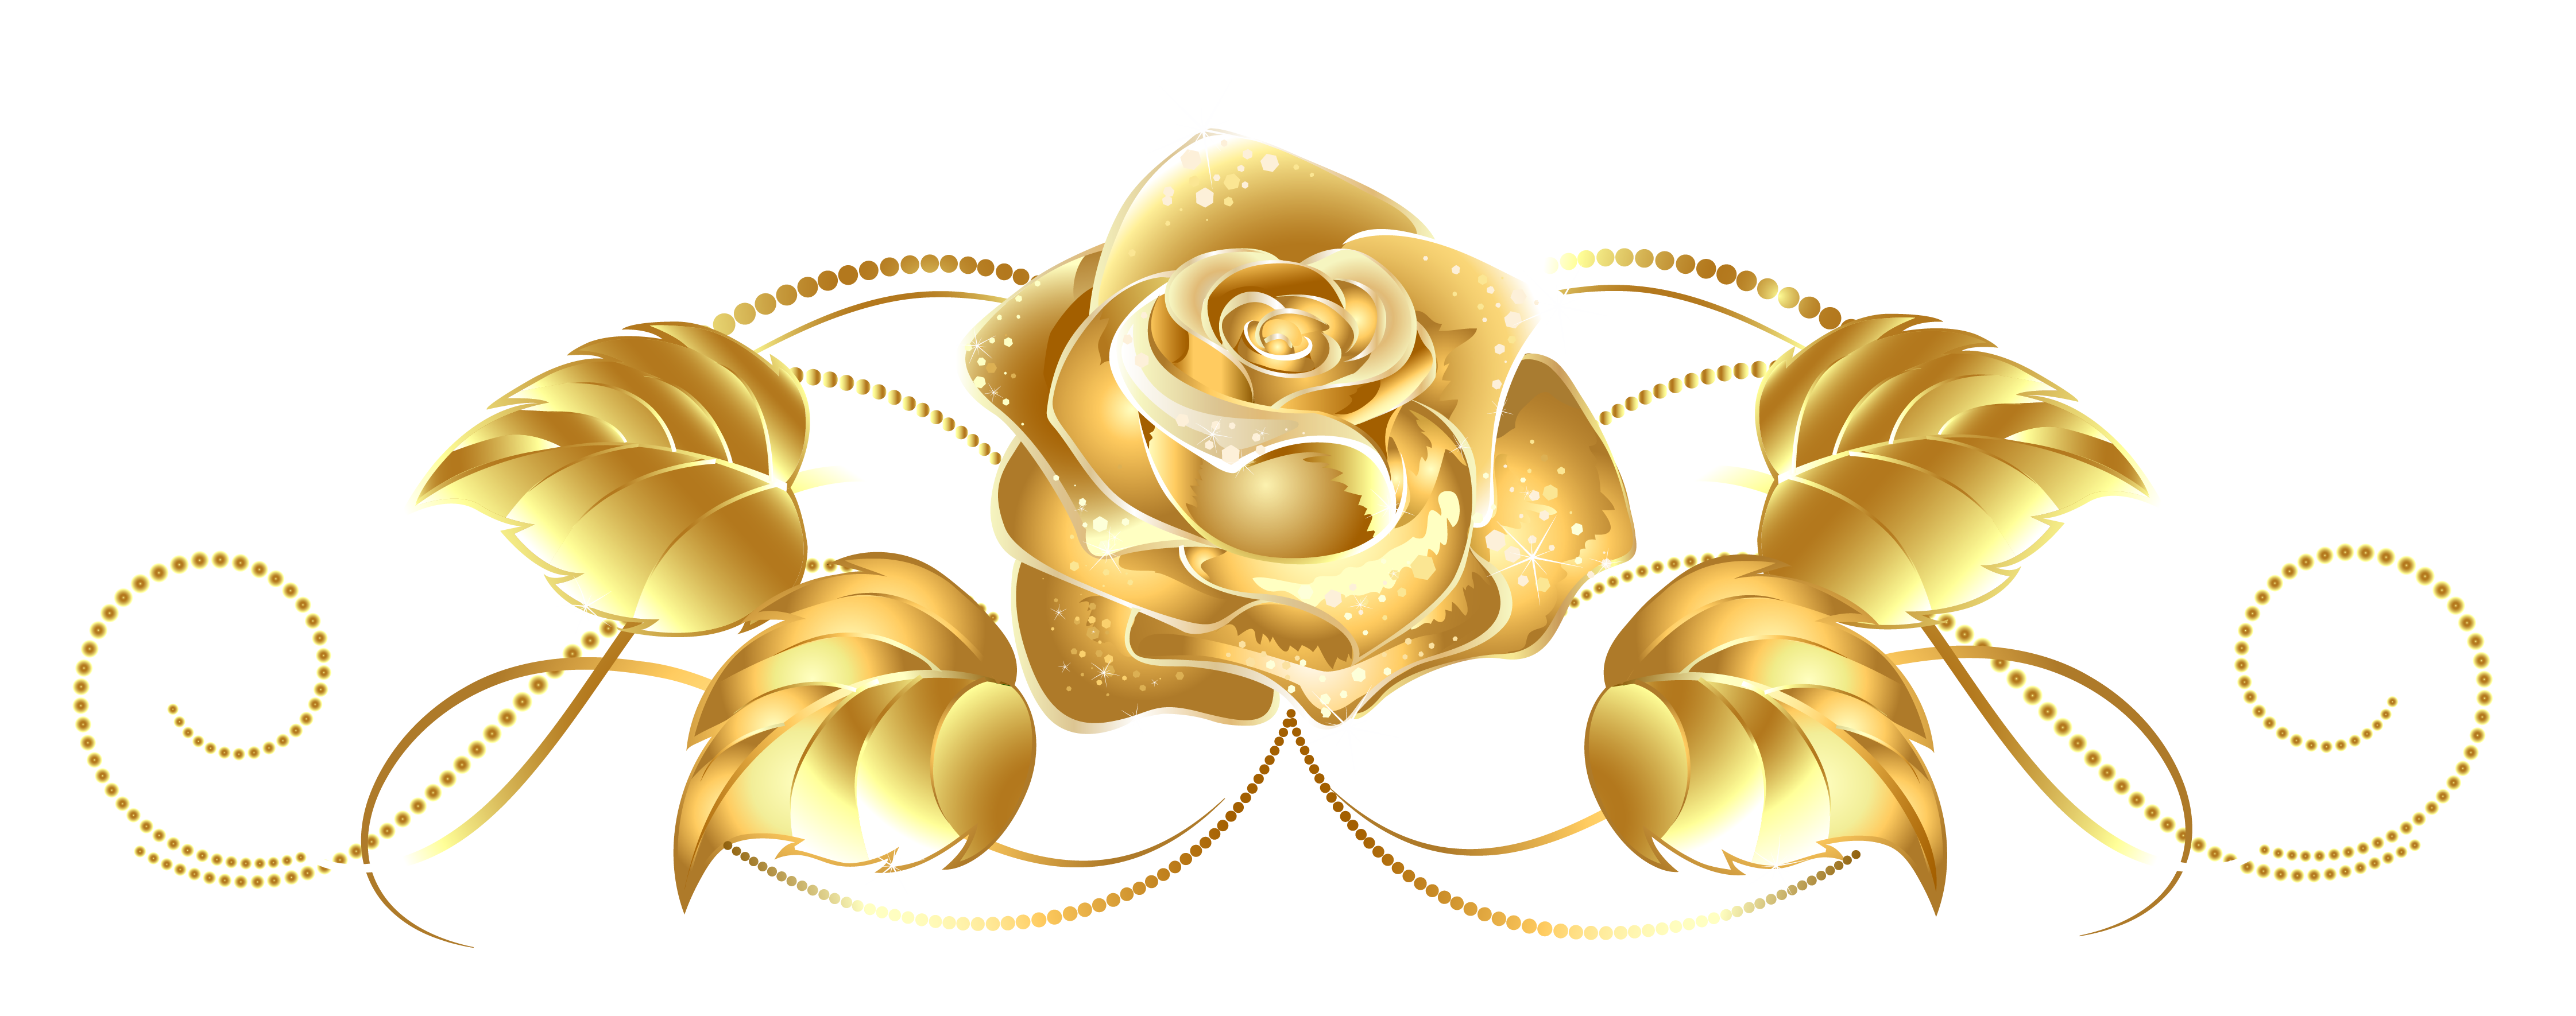 clipart freeuse stock Board clip gold.  golden ornaments png